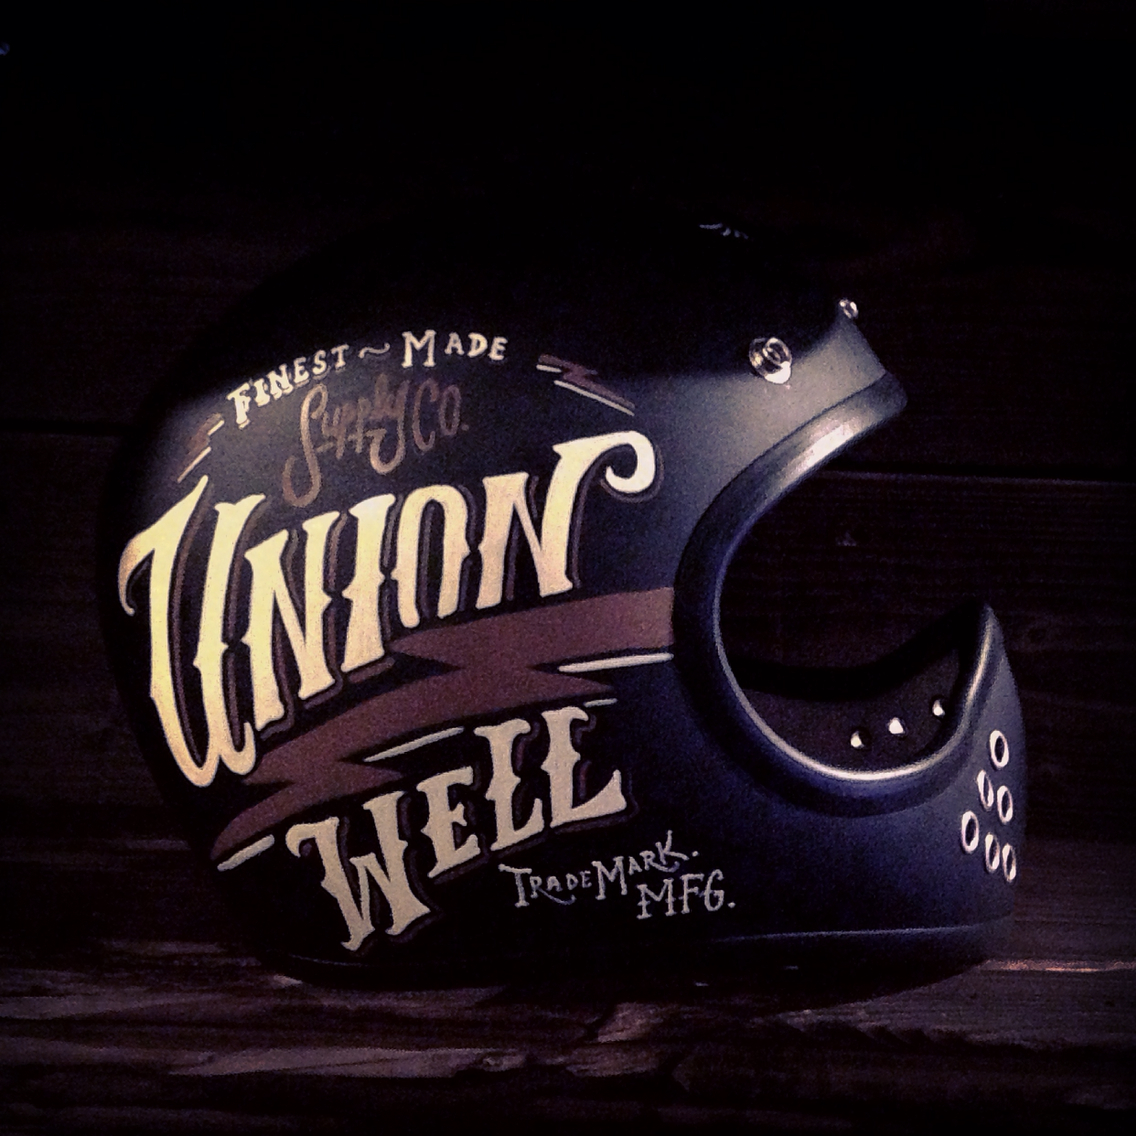 union well pinstripe (pinterest.com)